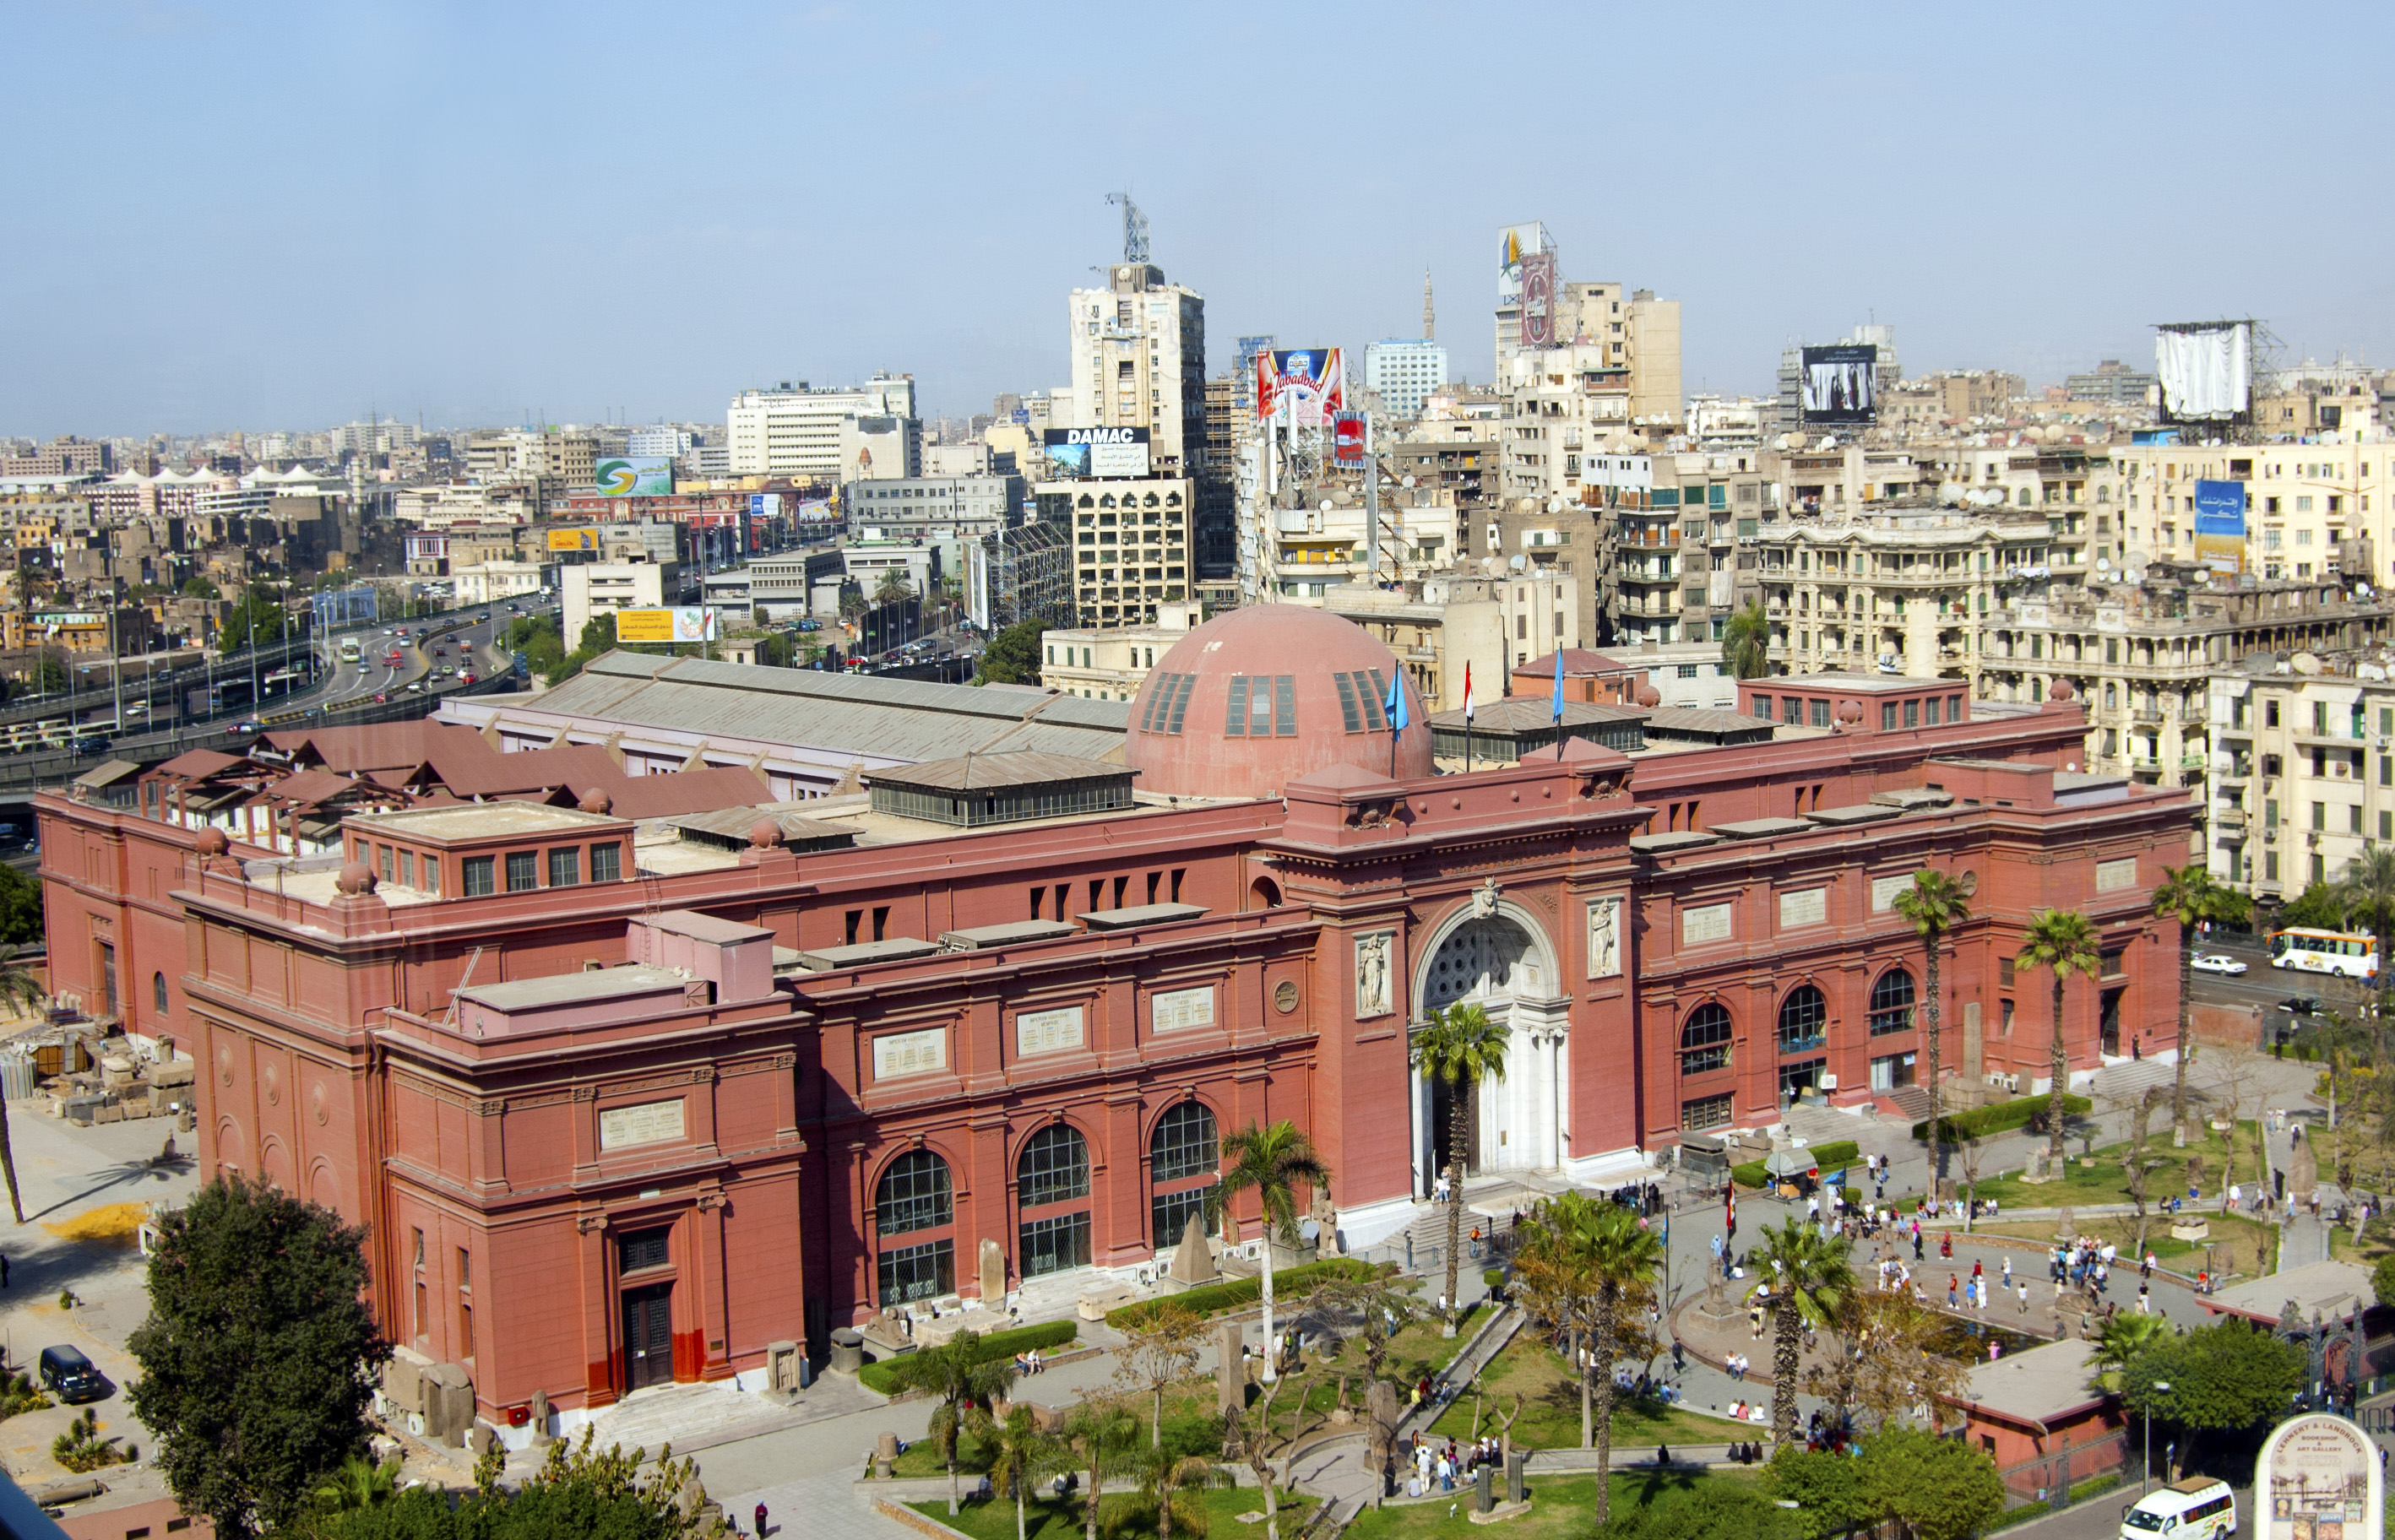 The Egyptian Museum.